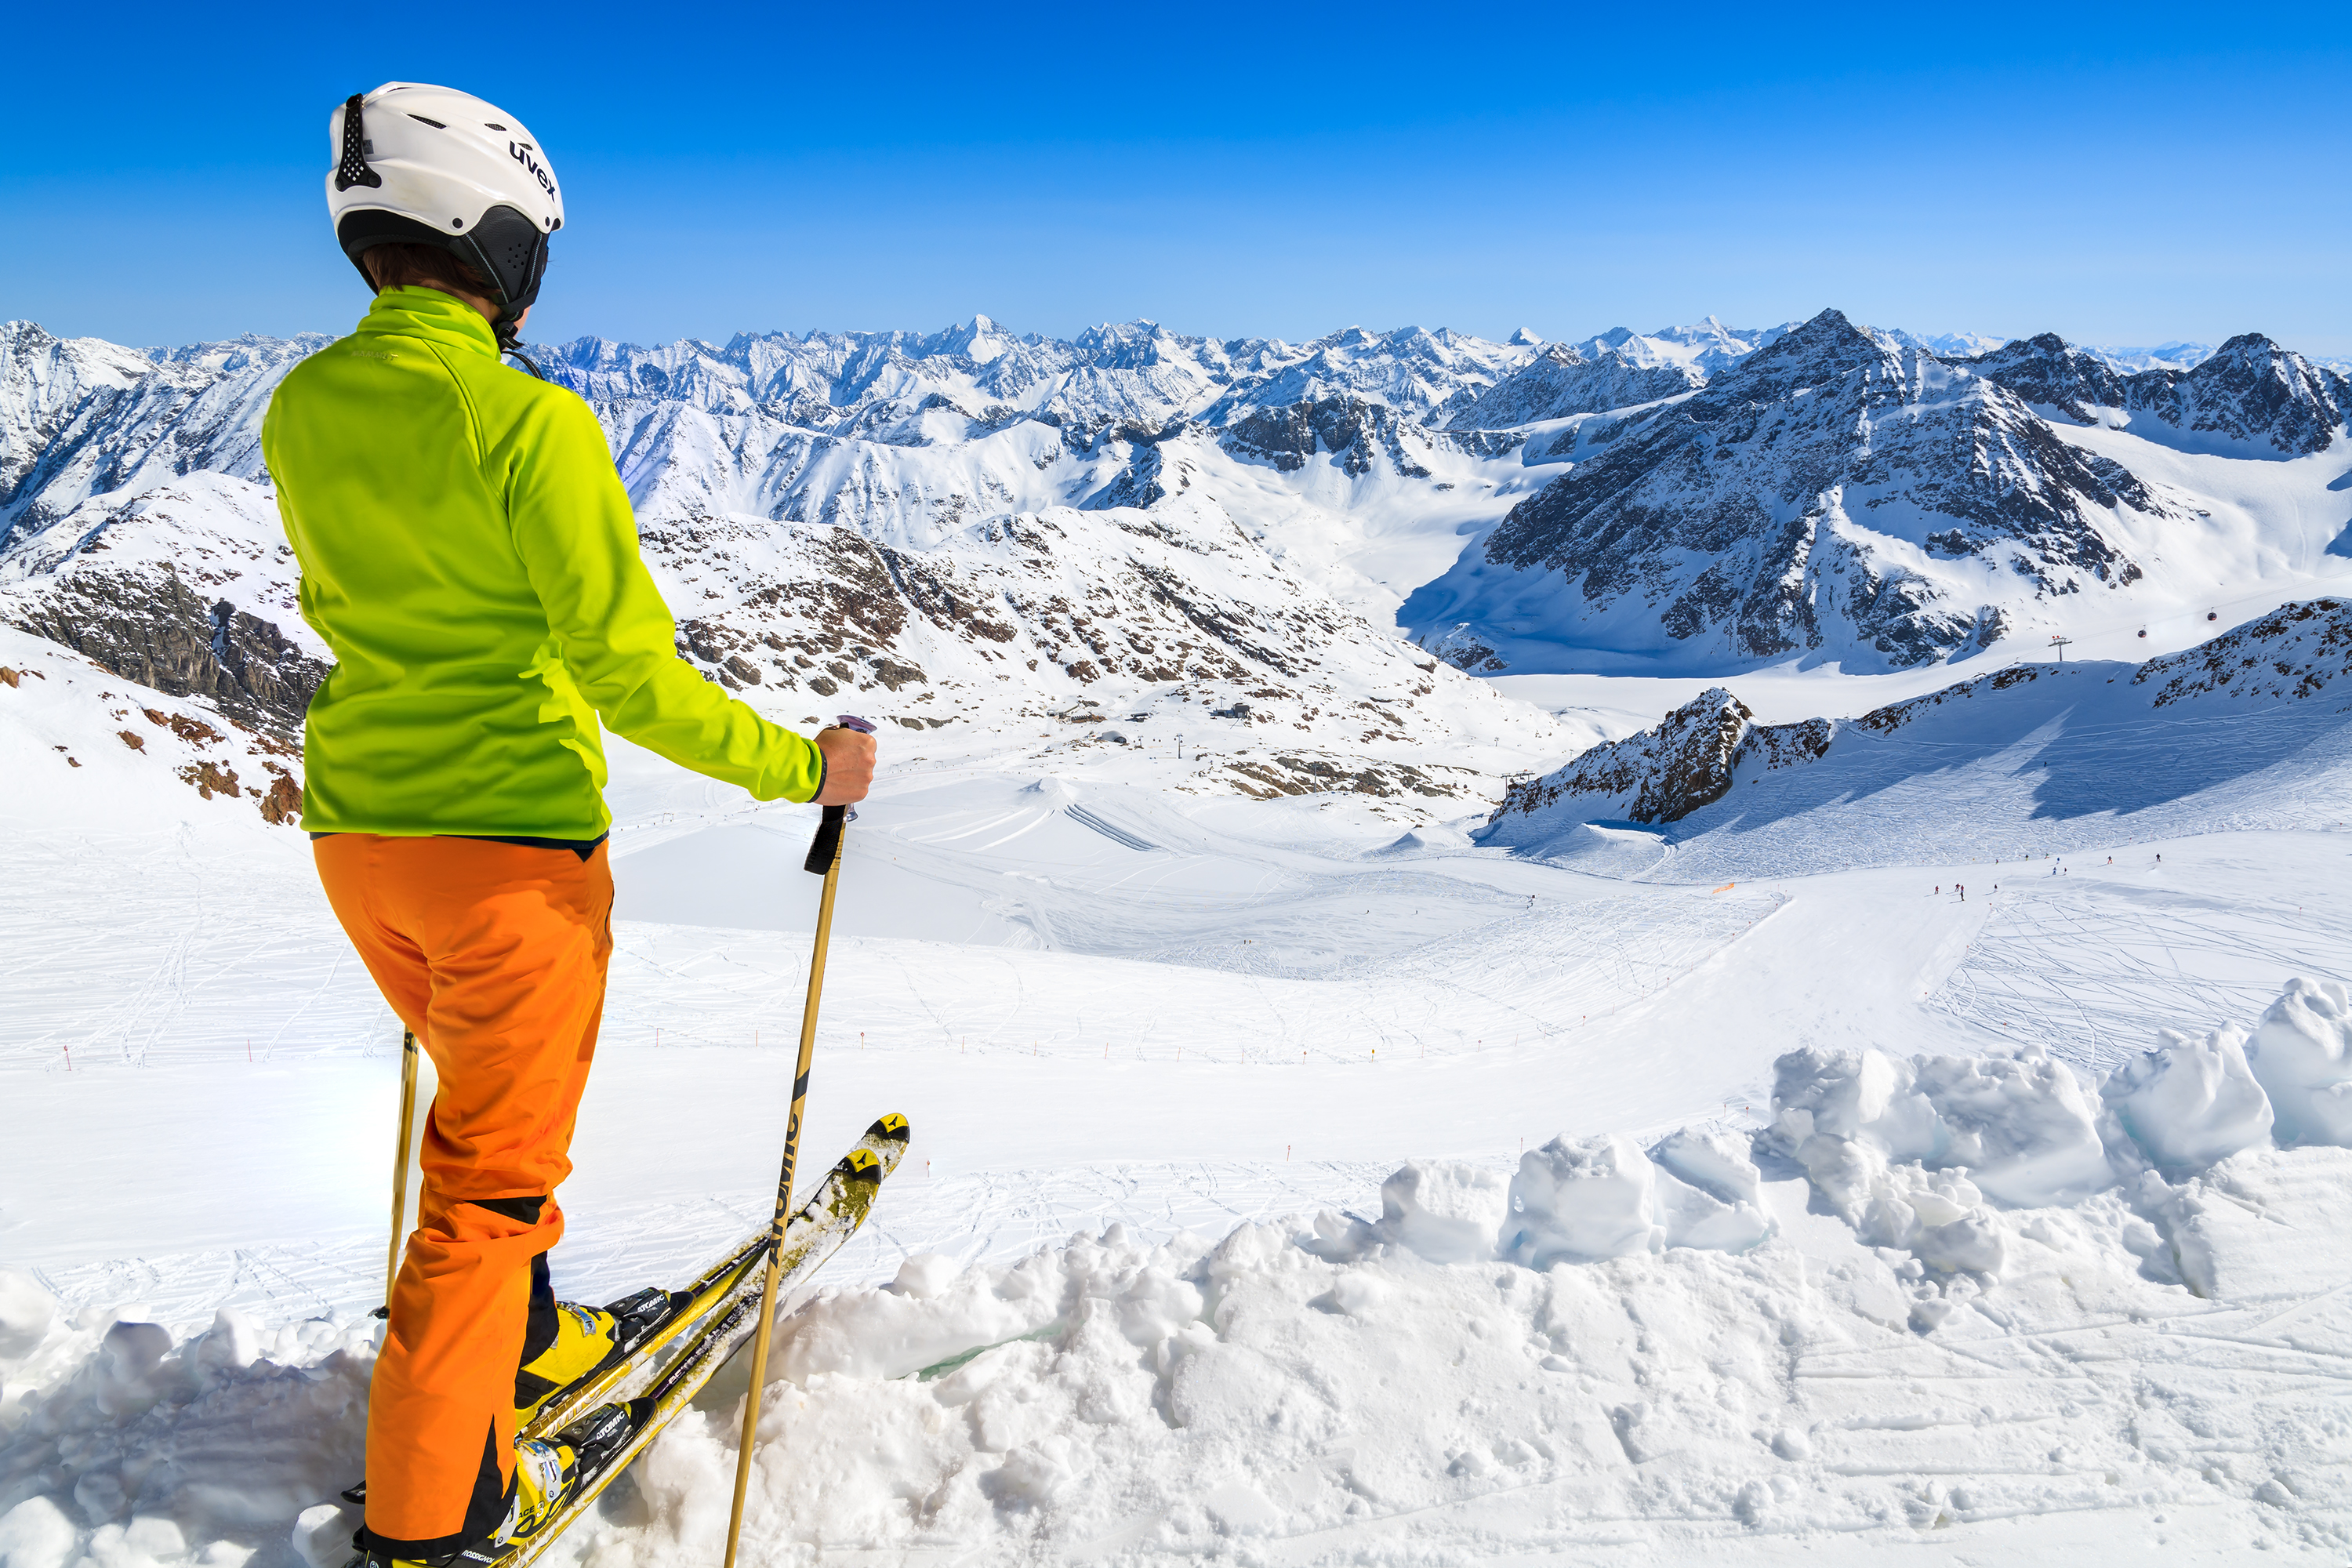 Woman skier on slope in the mountains of Pitztal winter resort